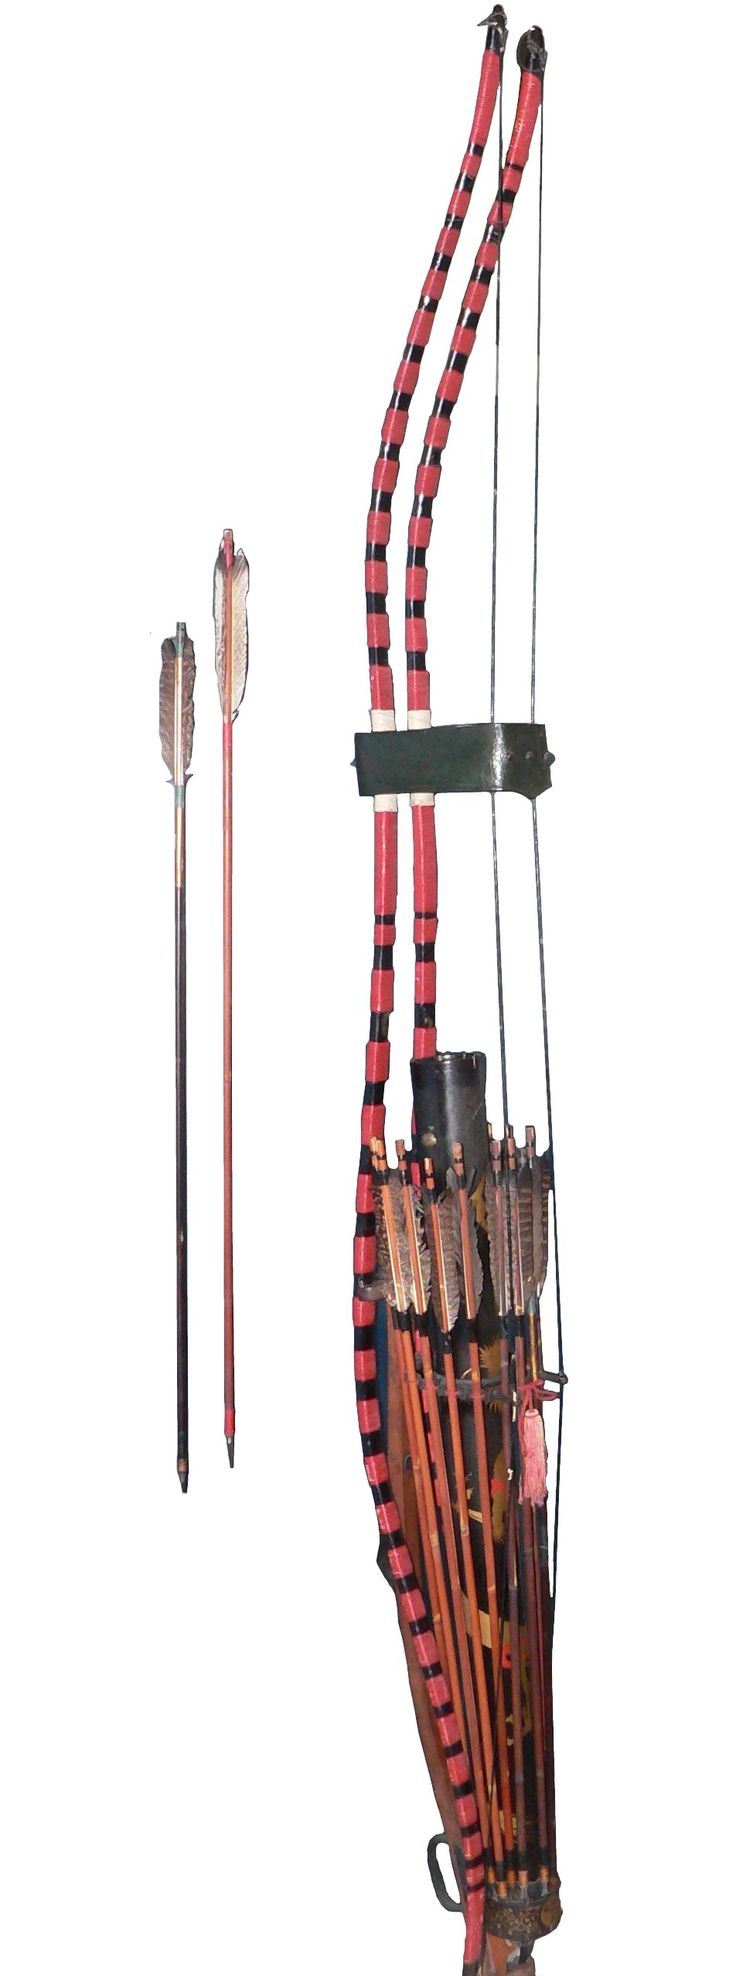 Yumi (弓?) is the Japanese term for bows, and includes the longer daikyū (大弓?) and the shorter hankyū (半弓?) used in the practice of kyūdō, or Japanese archery. The yumi was an important weapon of the samurai warrior during the feudal period of Japan Yumi is also a Japanese name